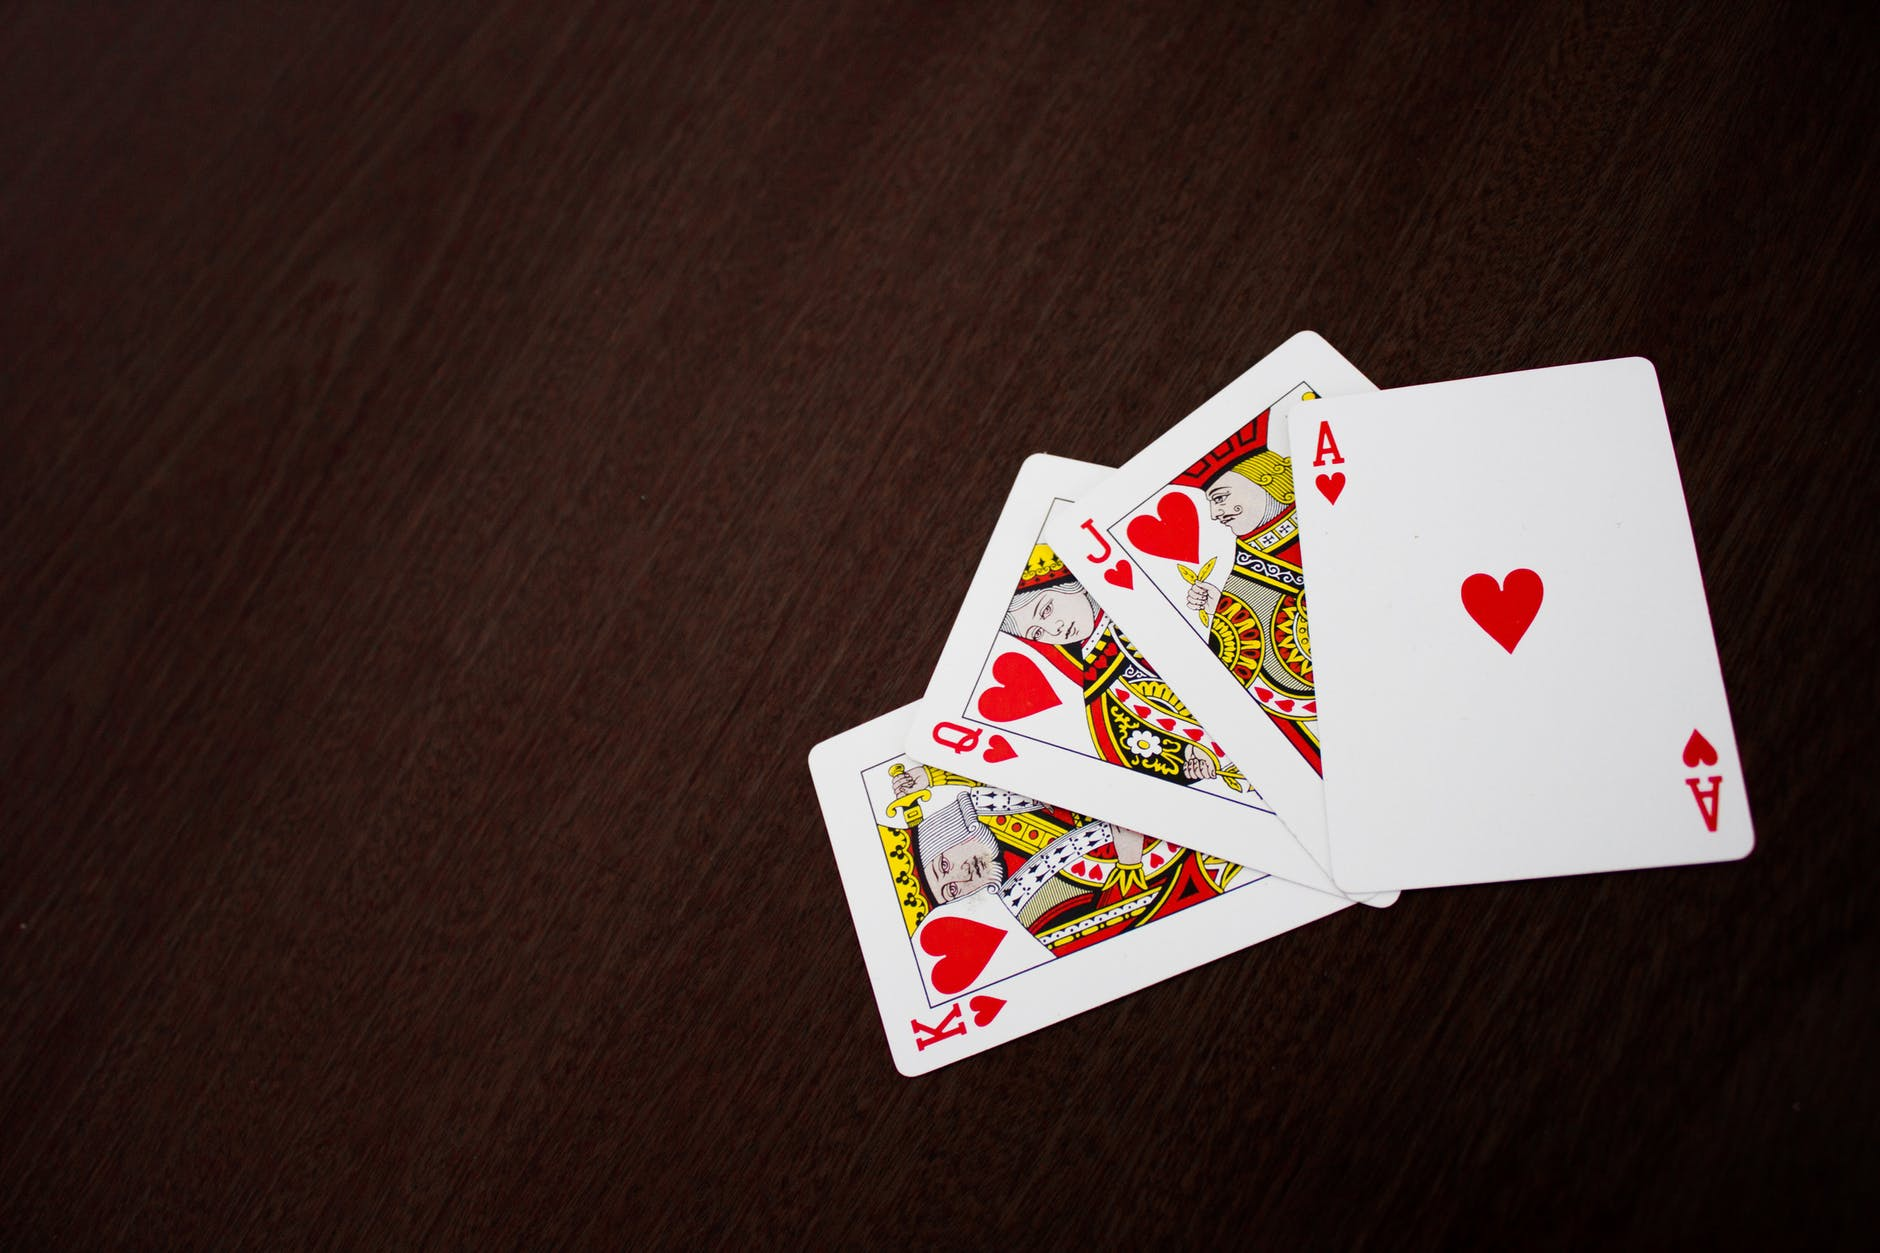 Heart playing cards